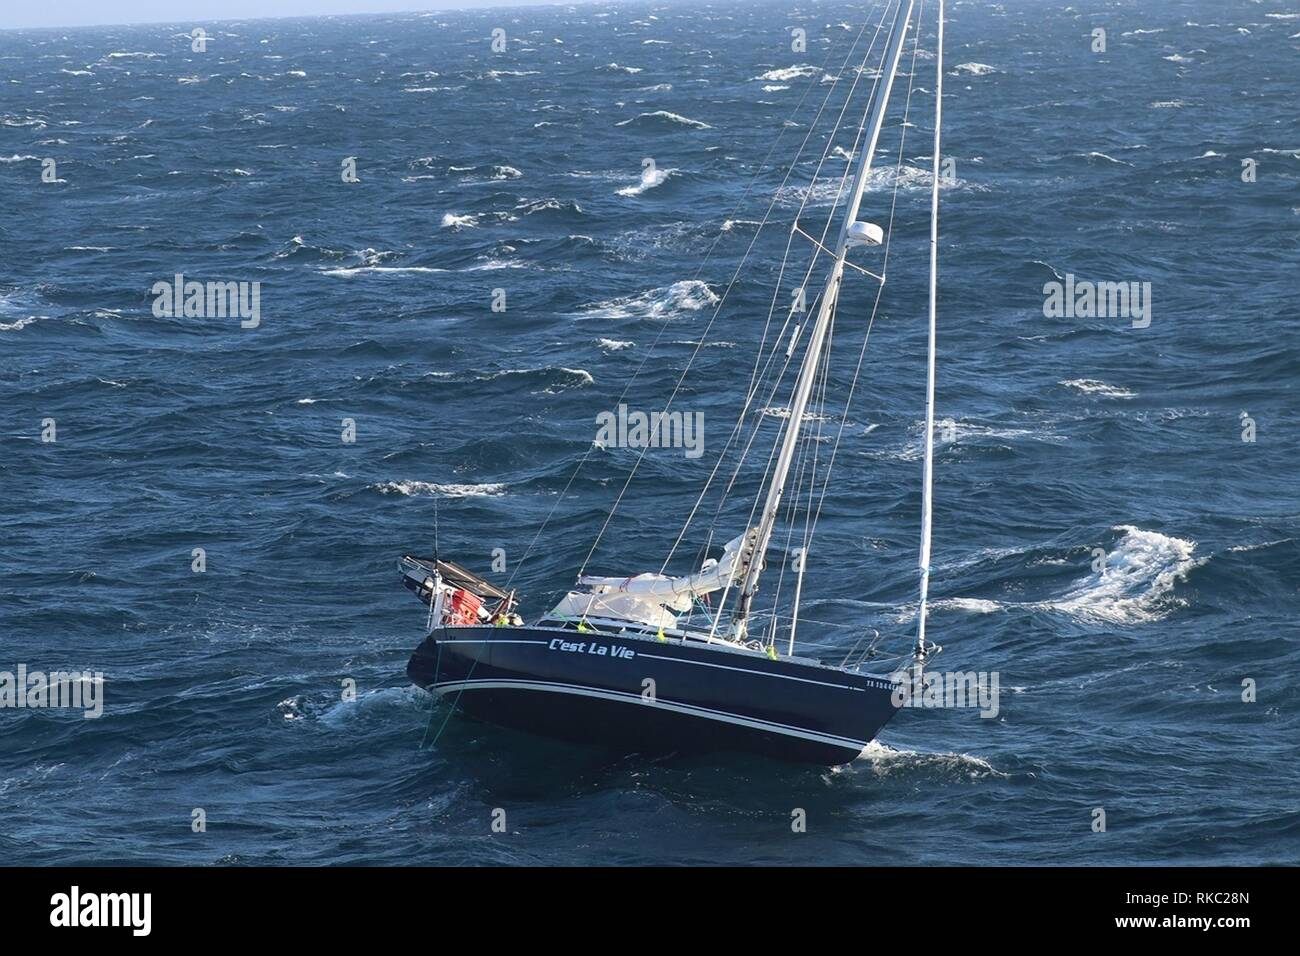 U.S. Coast Guard Cutter Reliance crew arrives at the disabled sailboat C'est La Vie floundering in the Atlantic Ocean 110 miles off the coast of Virginia Beach February 8, 2019 near Virginia Beach, Virginia. The 32-foot sailboat snapped the tiller while traveling from Sheepshead Bay, New York, destined for St. Croix. Two sailors were rescued and the boat towed to safety. - Stock Image